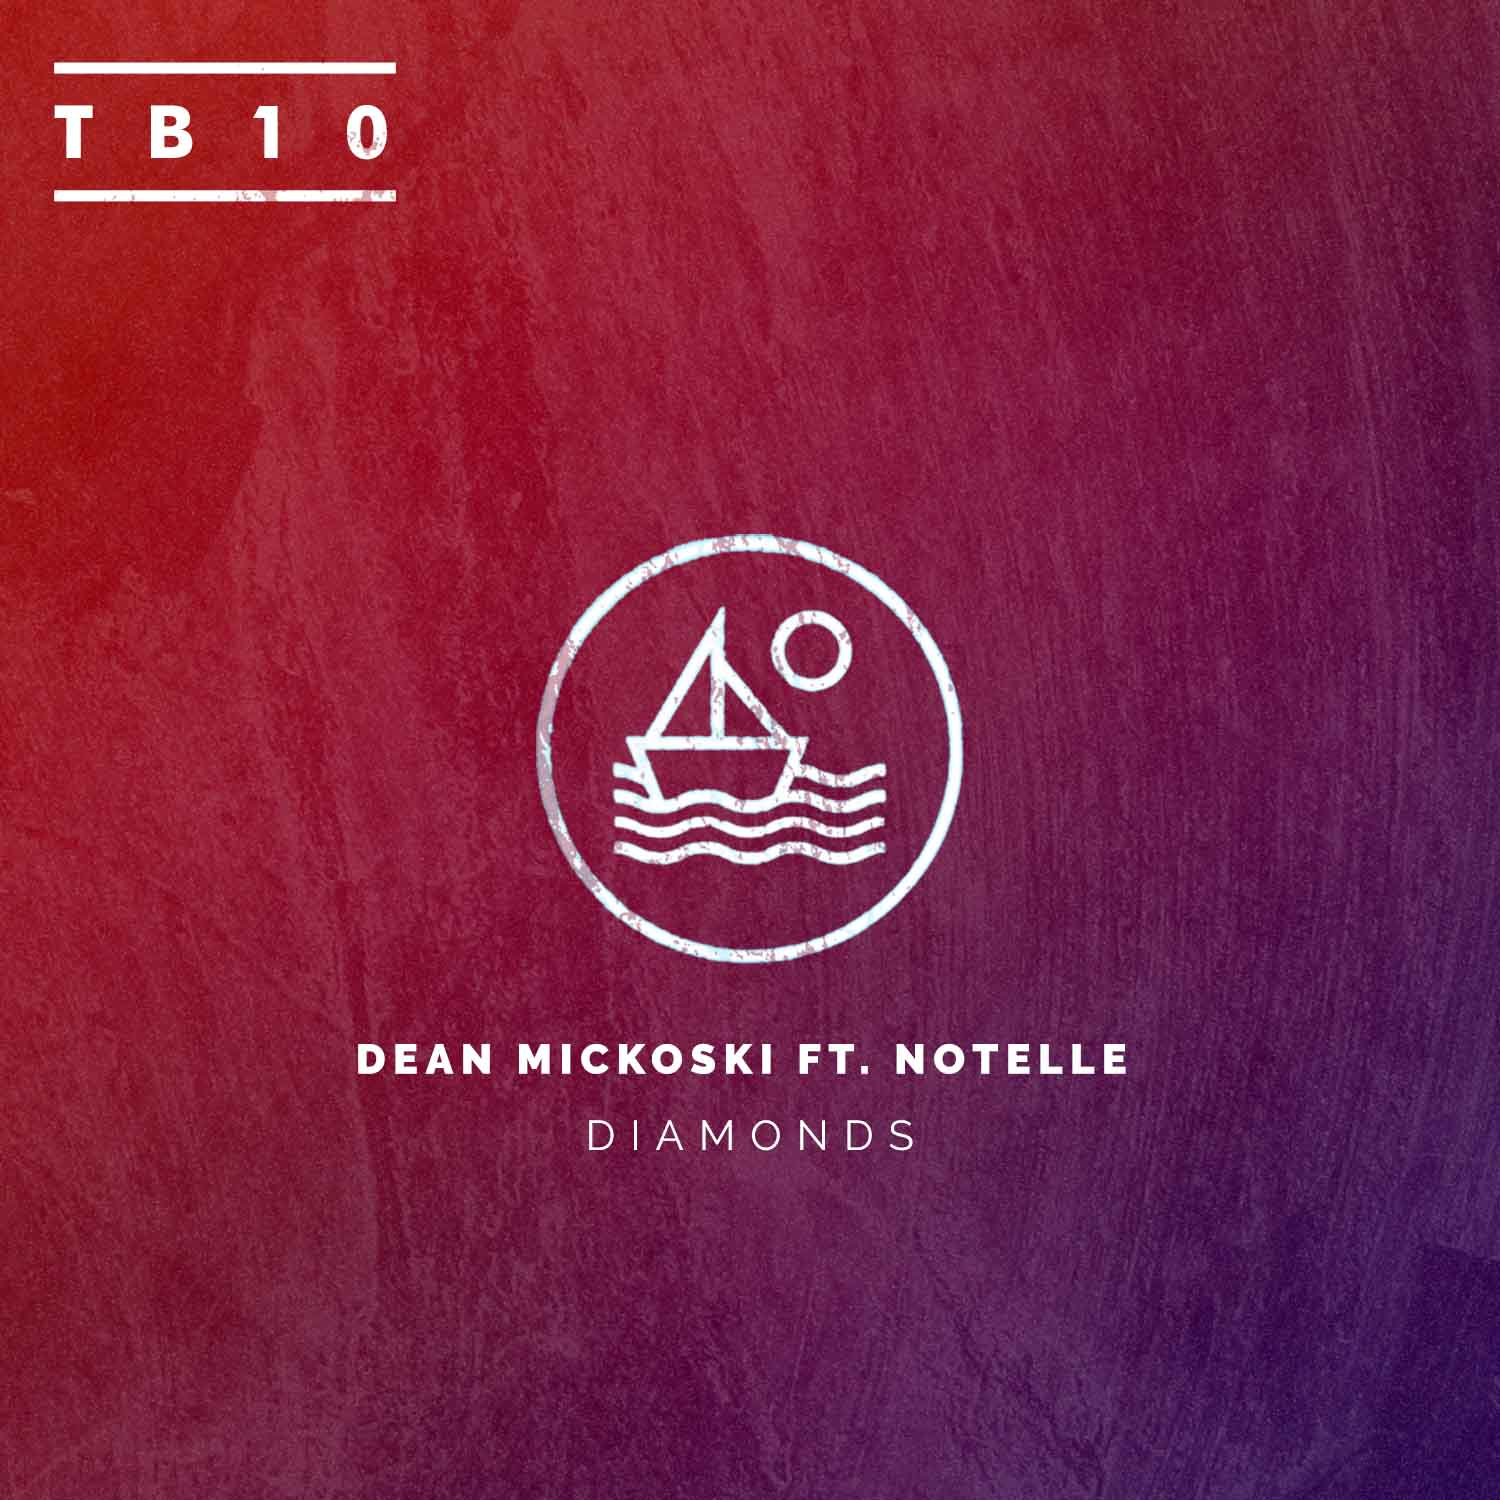 Dean Mickoski – Diamonds ft. Notelle